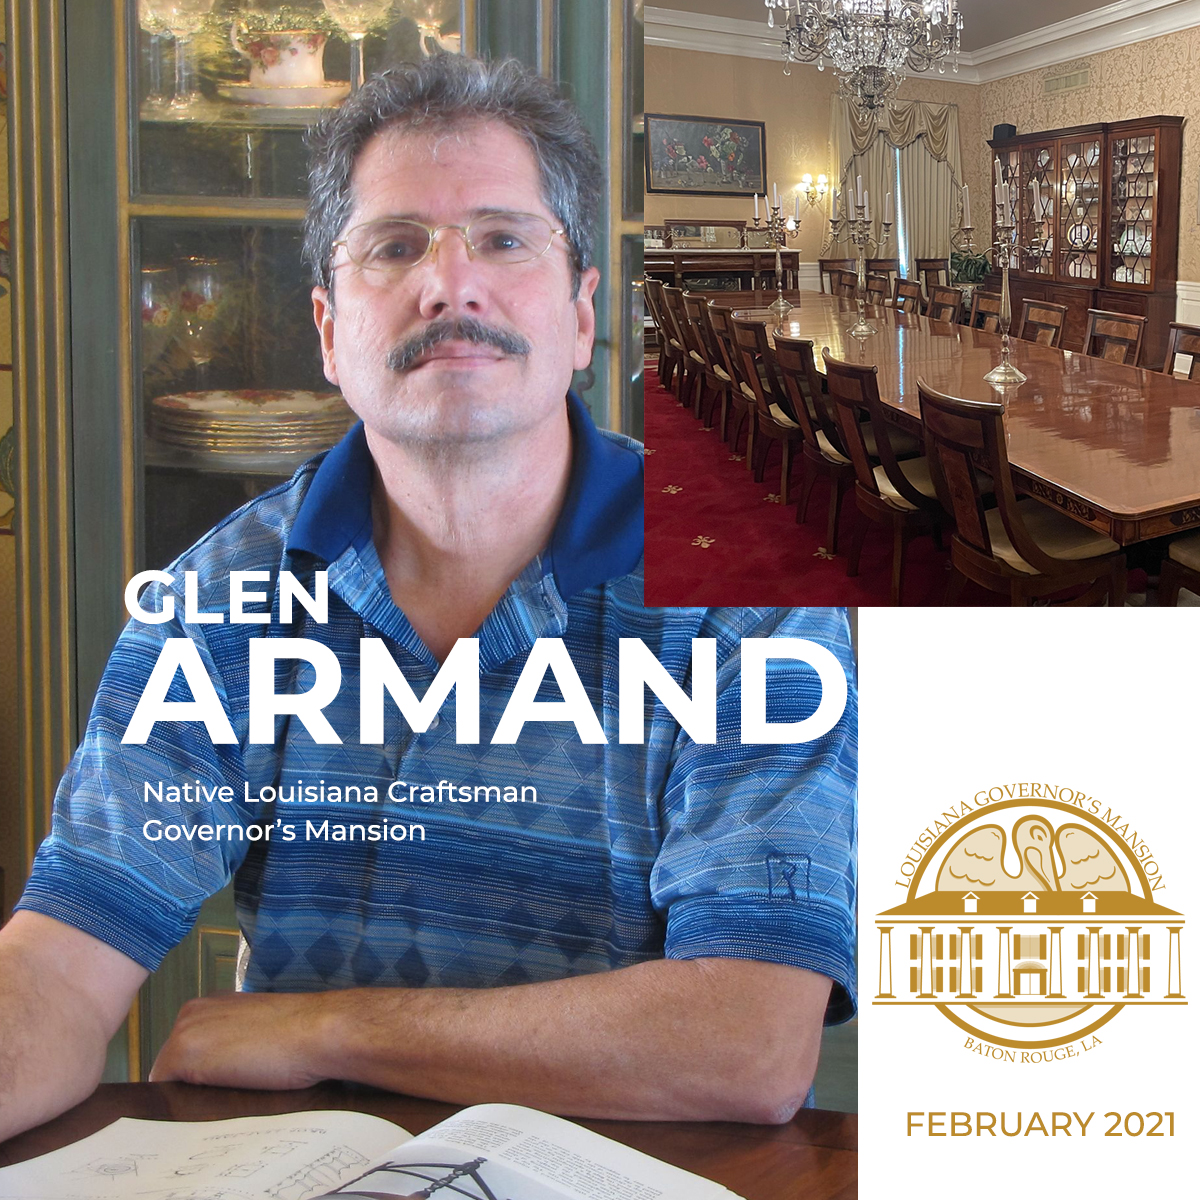 The Governor's Mansion: Glen Armand